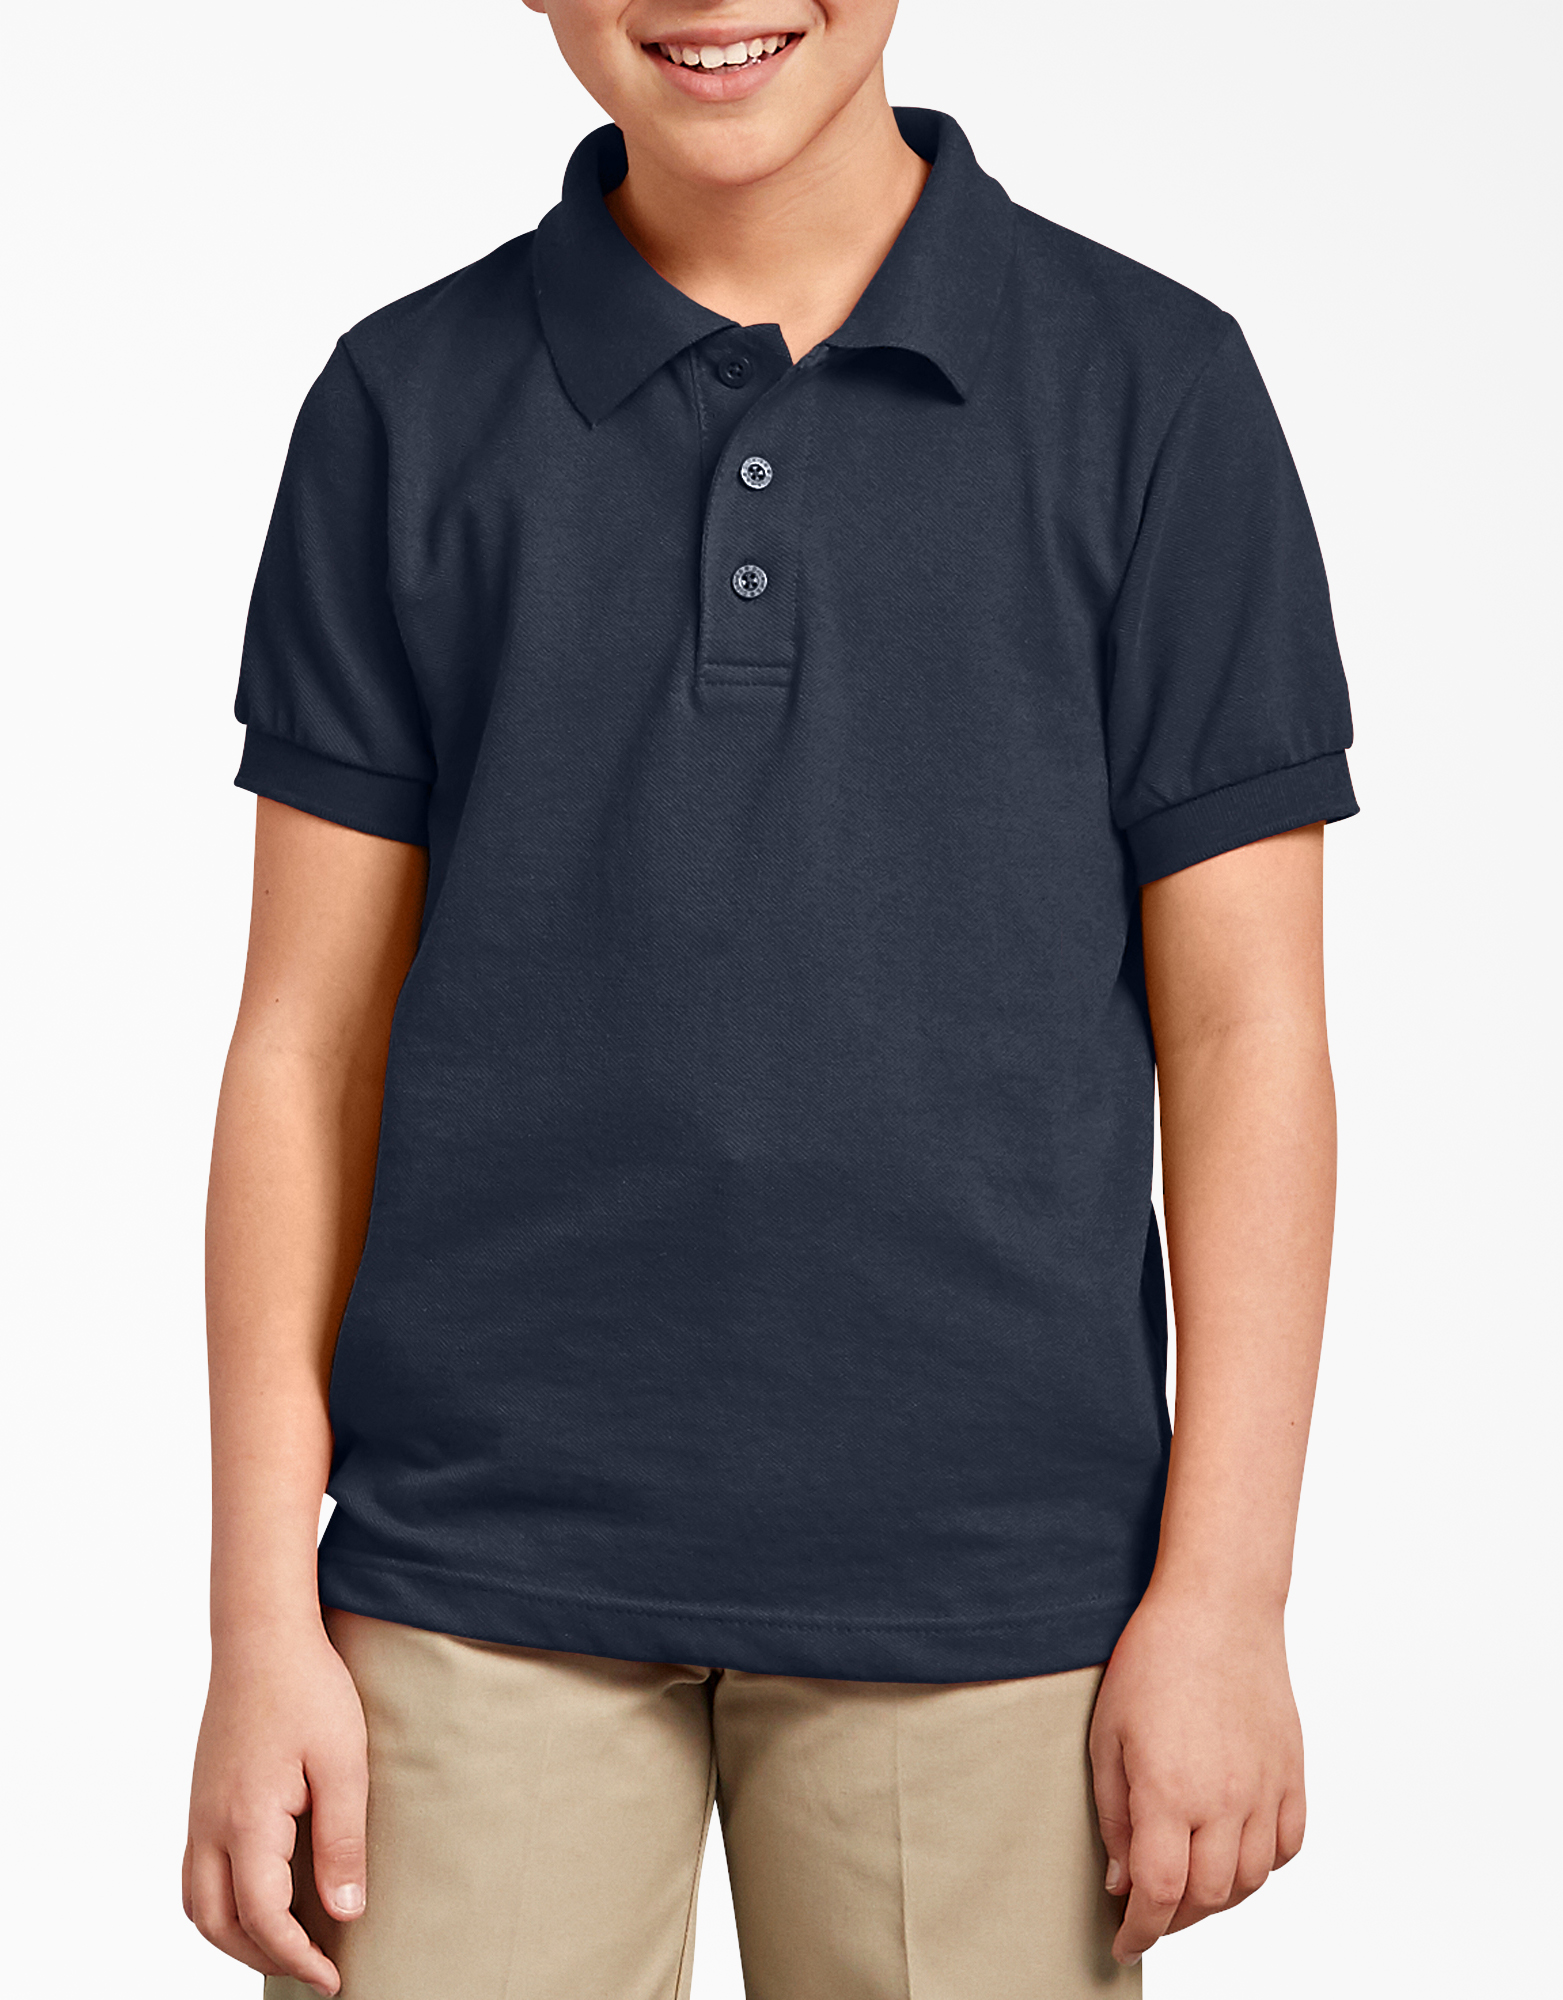 Kids' Short Sleeve Pique Polo Shirt, 8-20 - Dark Navy (DN)